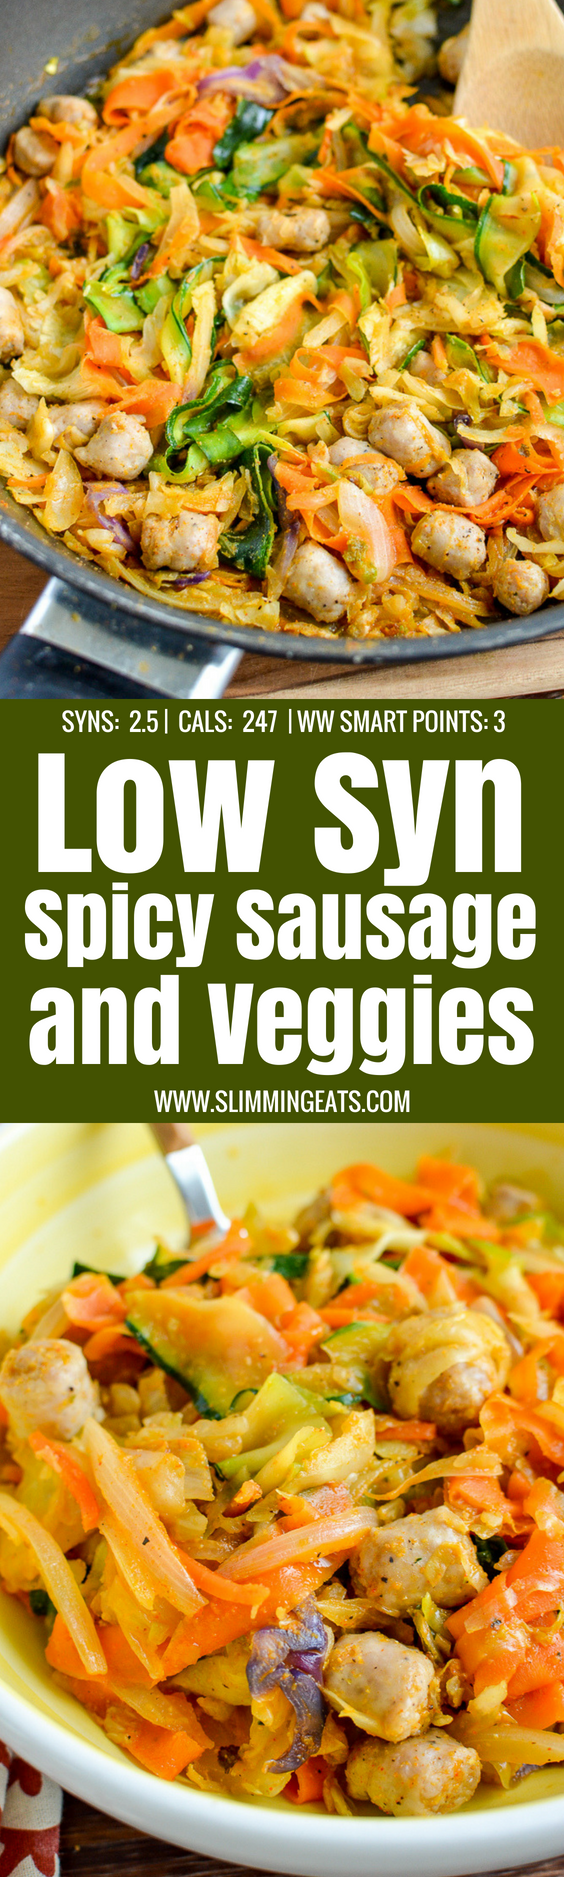 Spicy Sausage and Veggies - a delicious and healthy meal packed with speed foods.Gluten Free, dairy free, paleo, Slimming World and Weight Watchers friendly